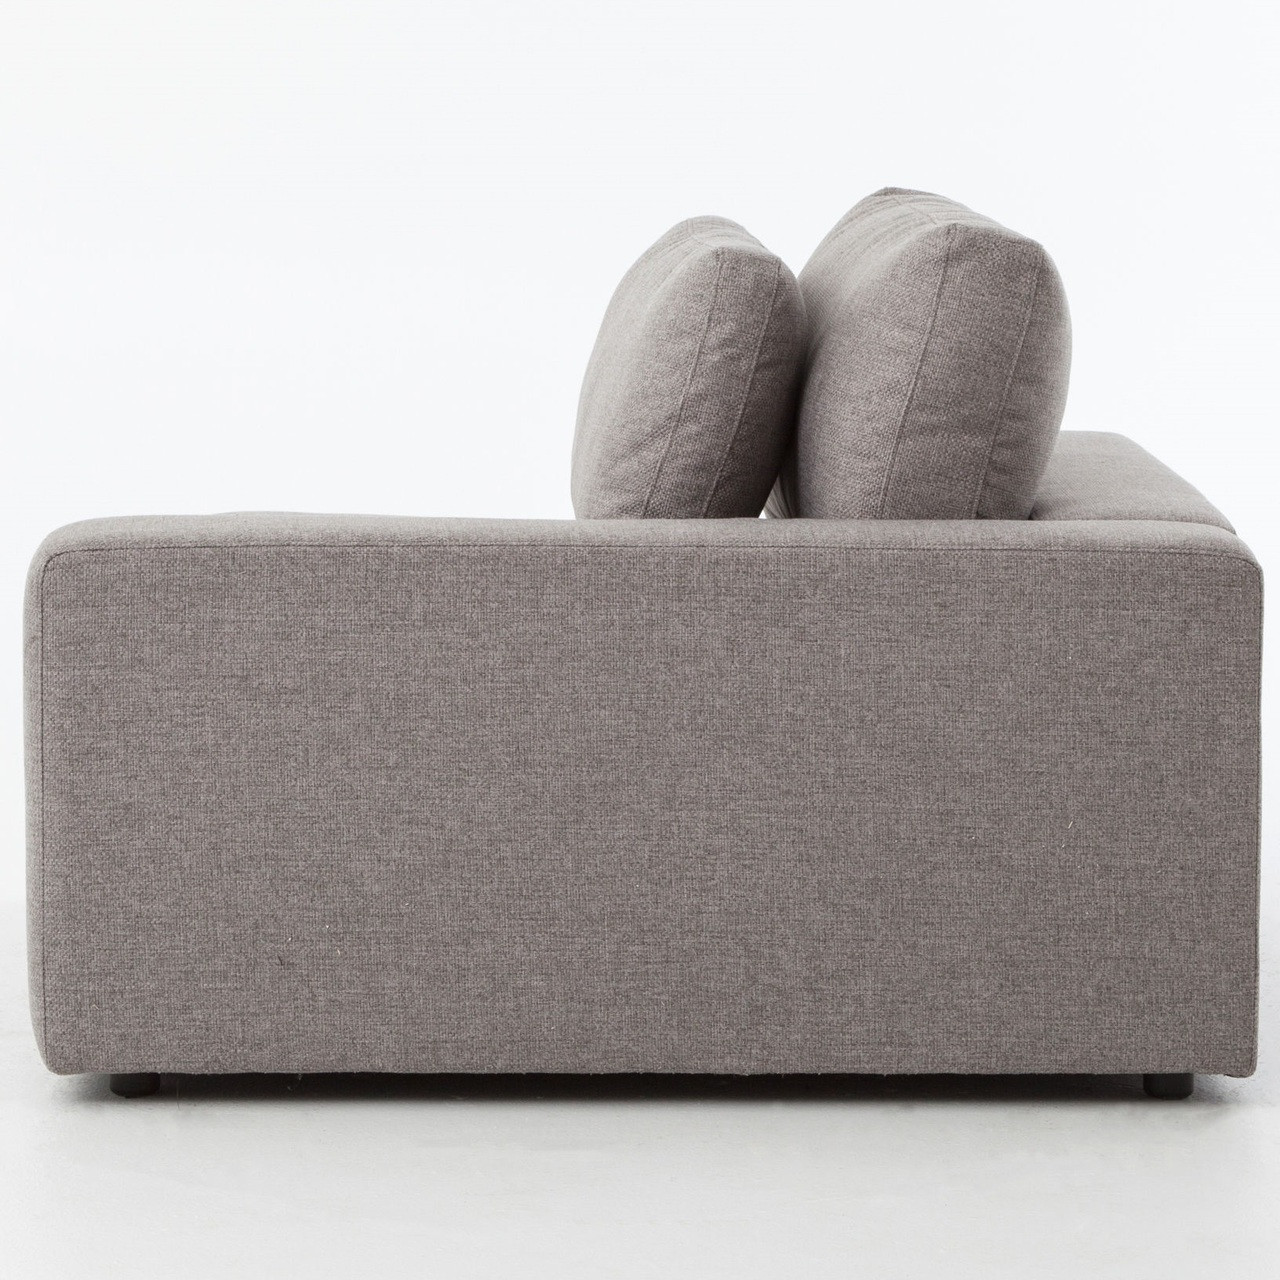 Small Modern Sectional Sofa: Bloor Gray Contemporary 3 Piece Small Sectional Sofa